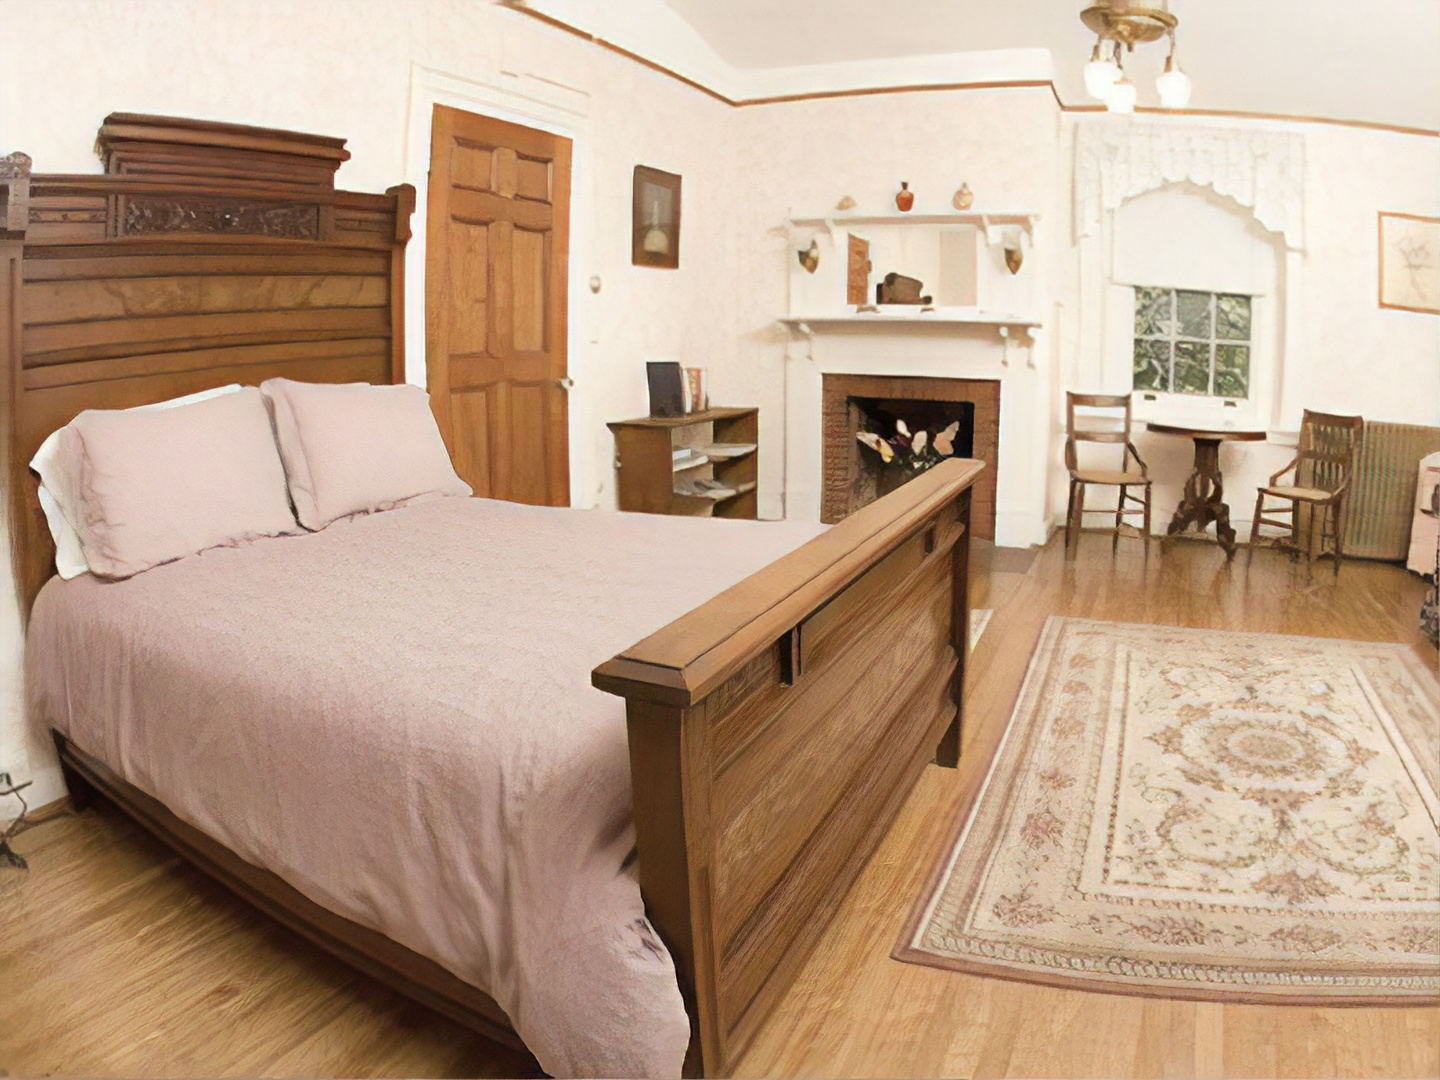 A bedroom with a bed and desk in a room at Catamount Bed & Breakfast.